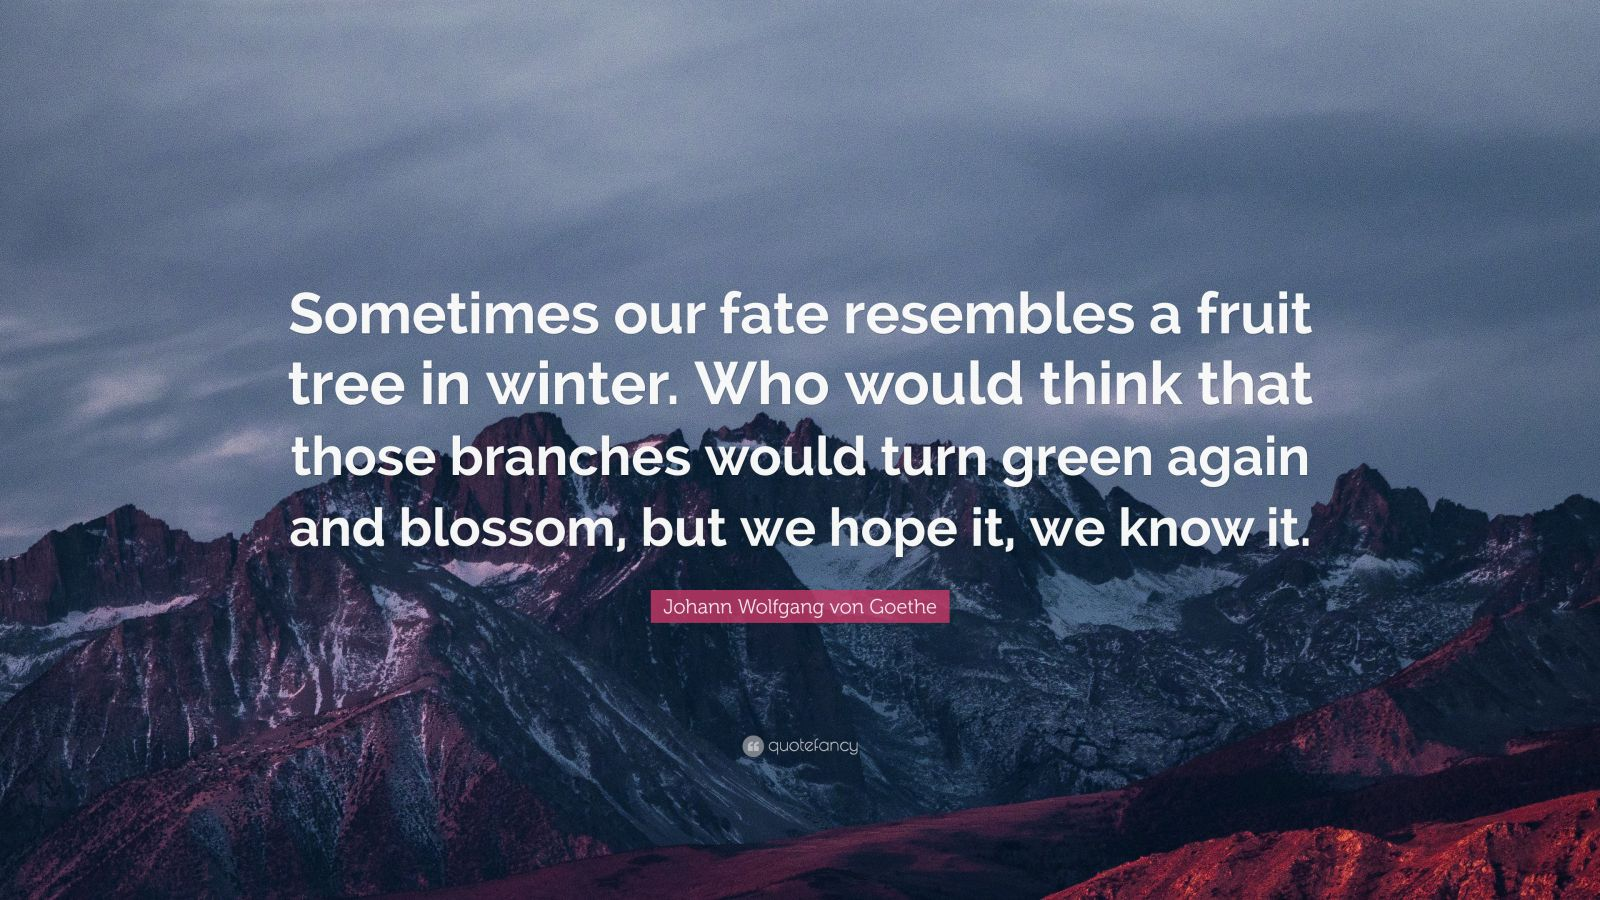 """Johann Wolfgang von Goethe Quote: """"Sometimes our fate resembles a fruit tree in winter. Who would think that those branches would turn green again and blossom, but we hope it, we know it."""""""